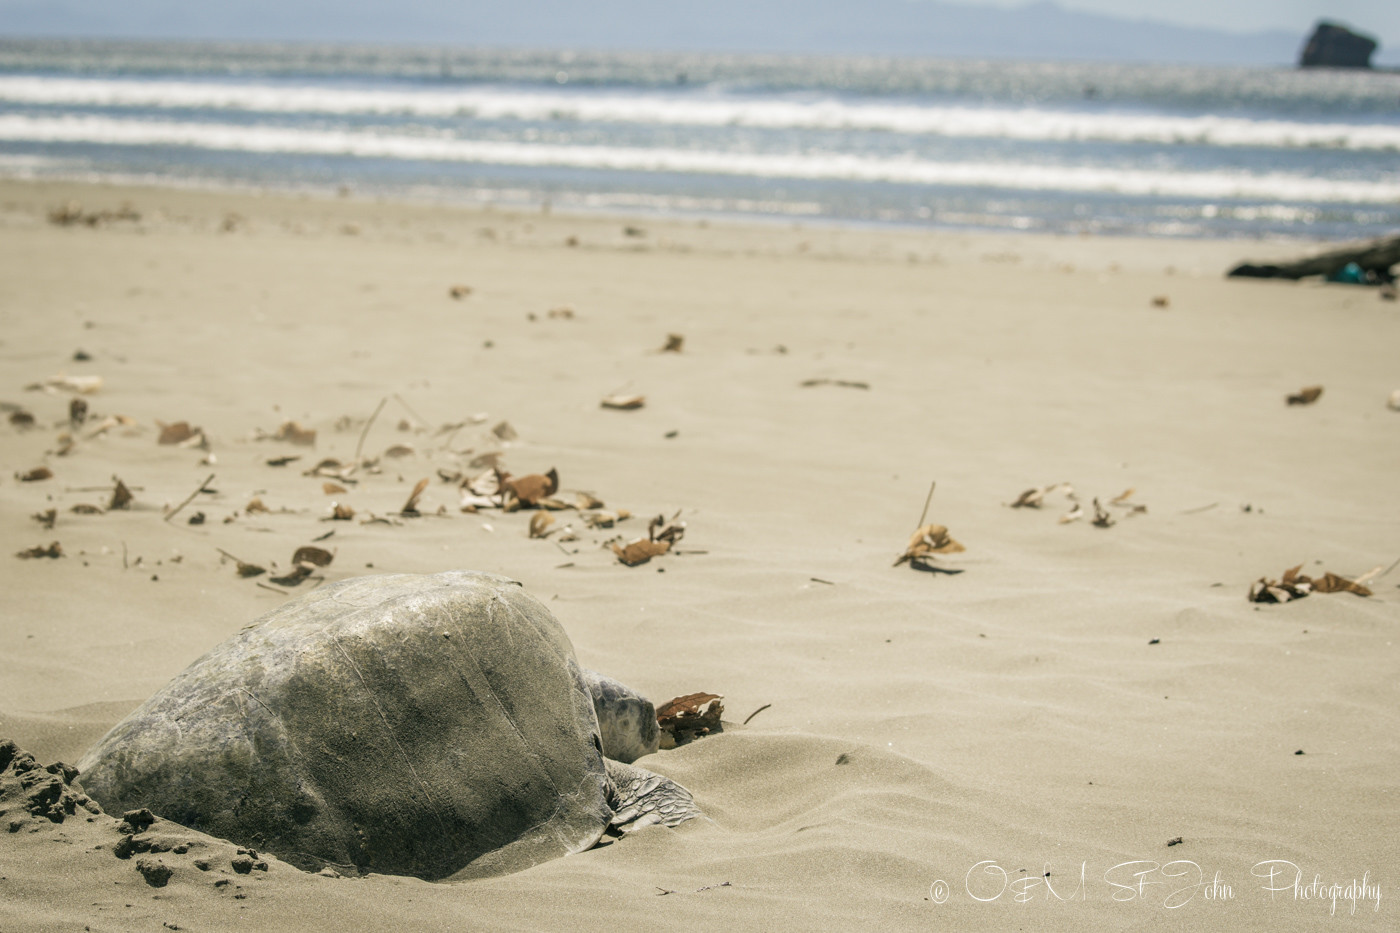 Turtle watching...Turtle laying eggs on Playa Hermosa, San Juan del Sur, Nicaragua